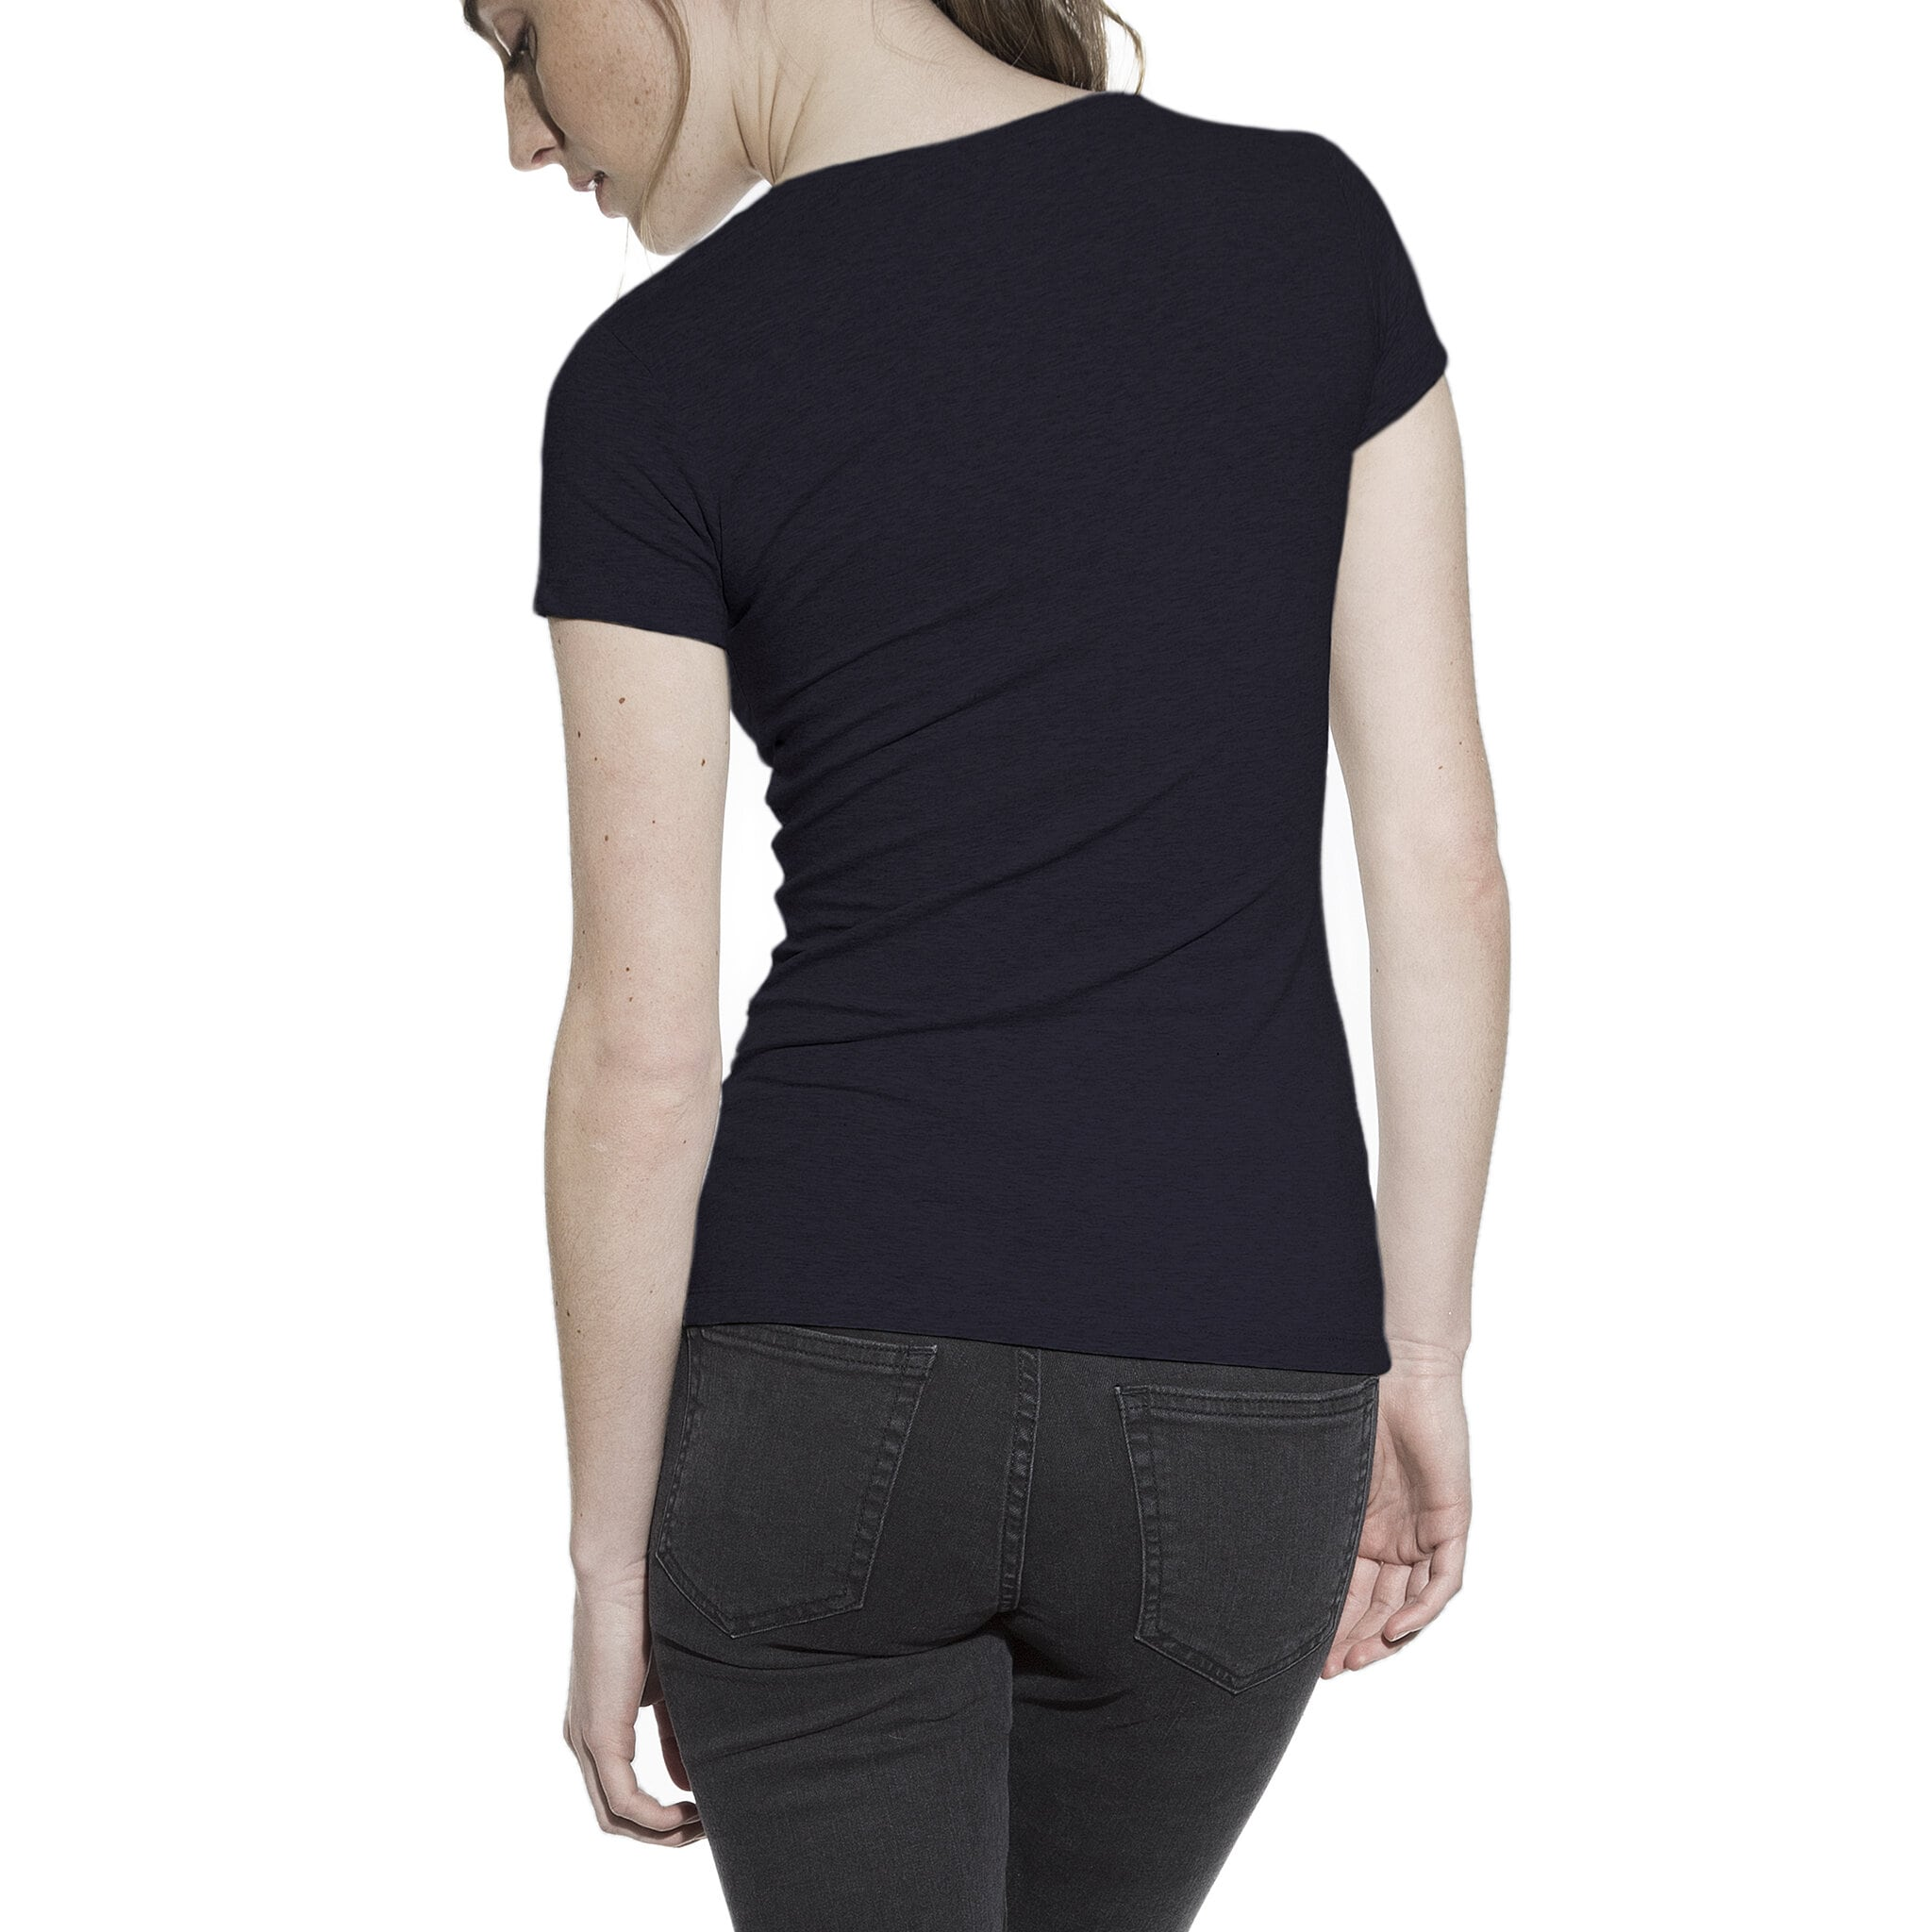 601104_Woman_Crew-Neck_dark-navy_3